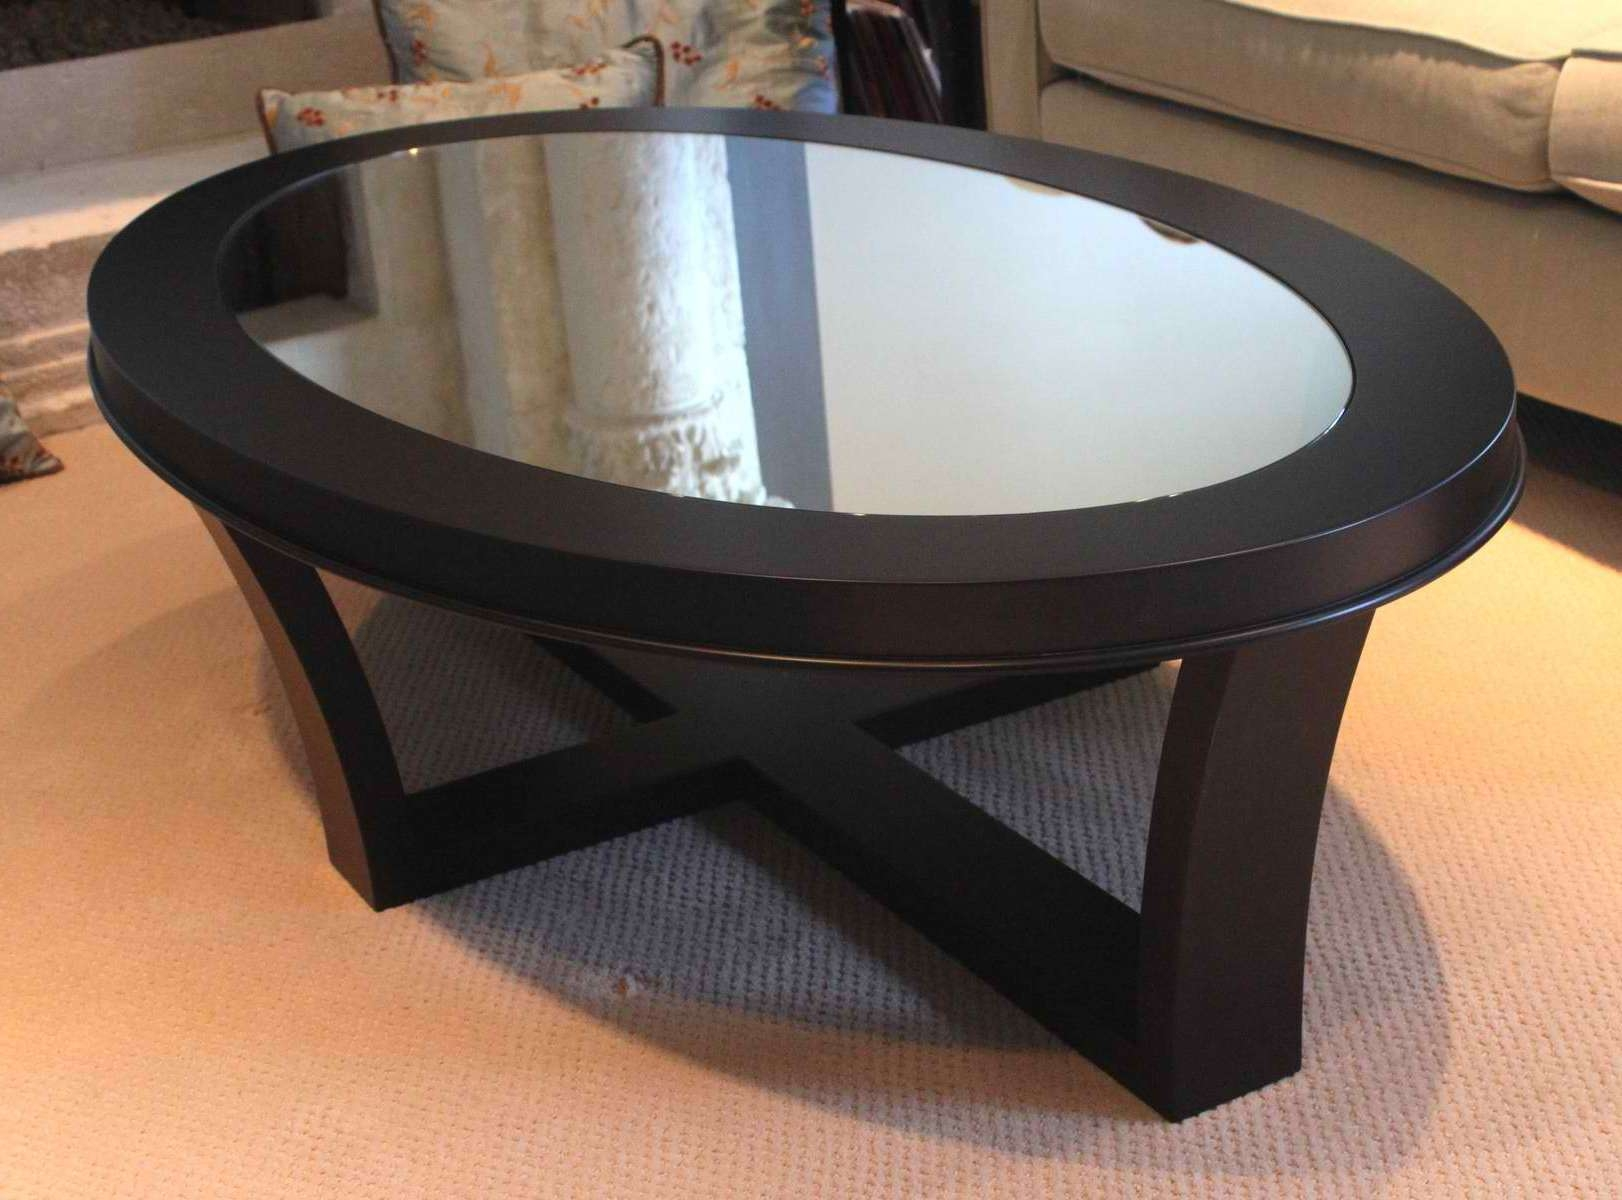 Most Recently Released Oval Glass And Wood Coffee Tables Throughout Oval Glass Top Coffee Table With Storage And Wooden Base With (View 6 of 20)